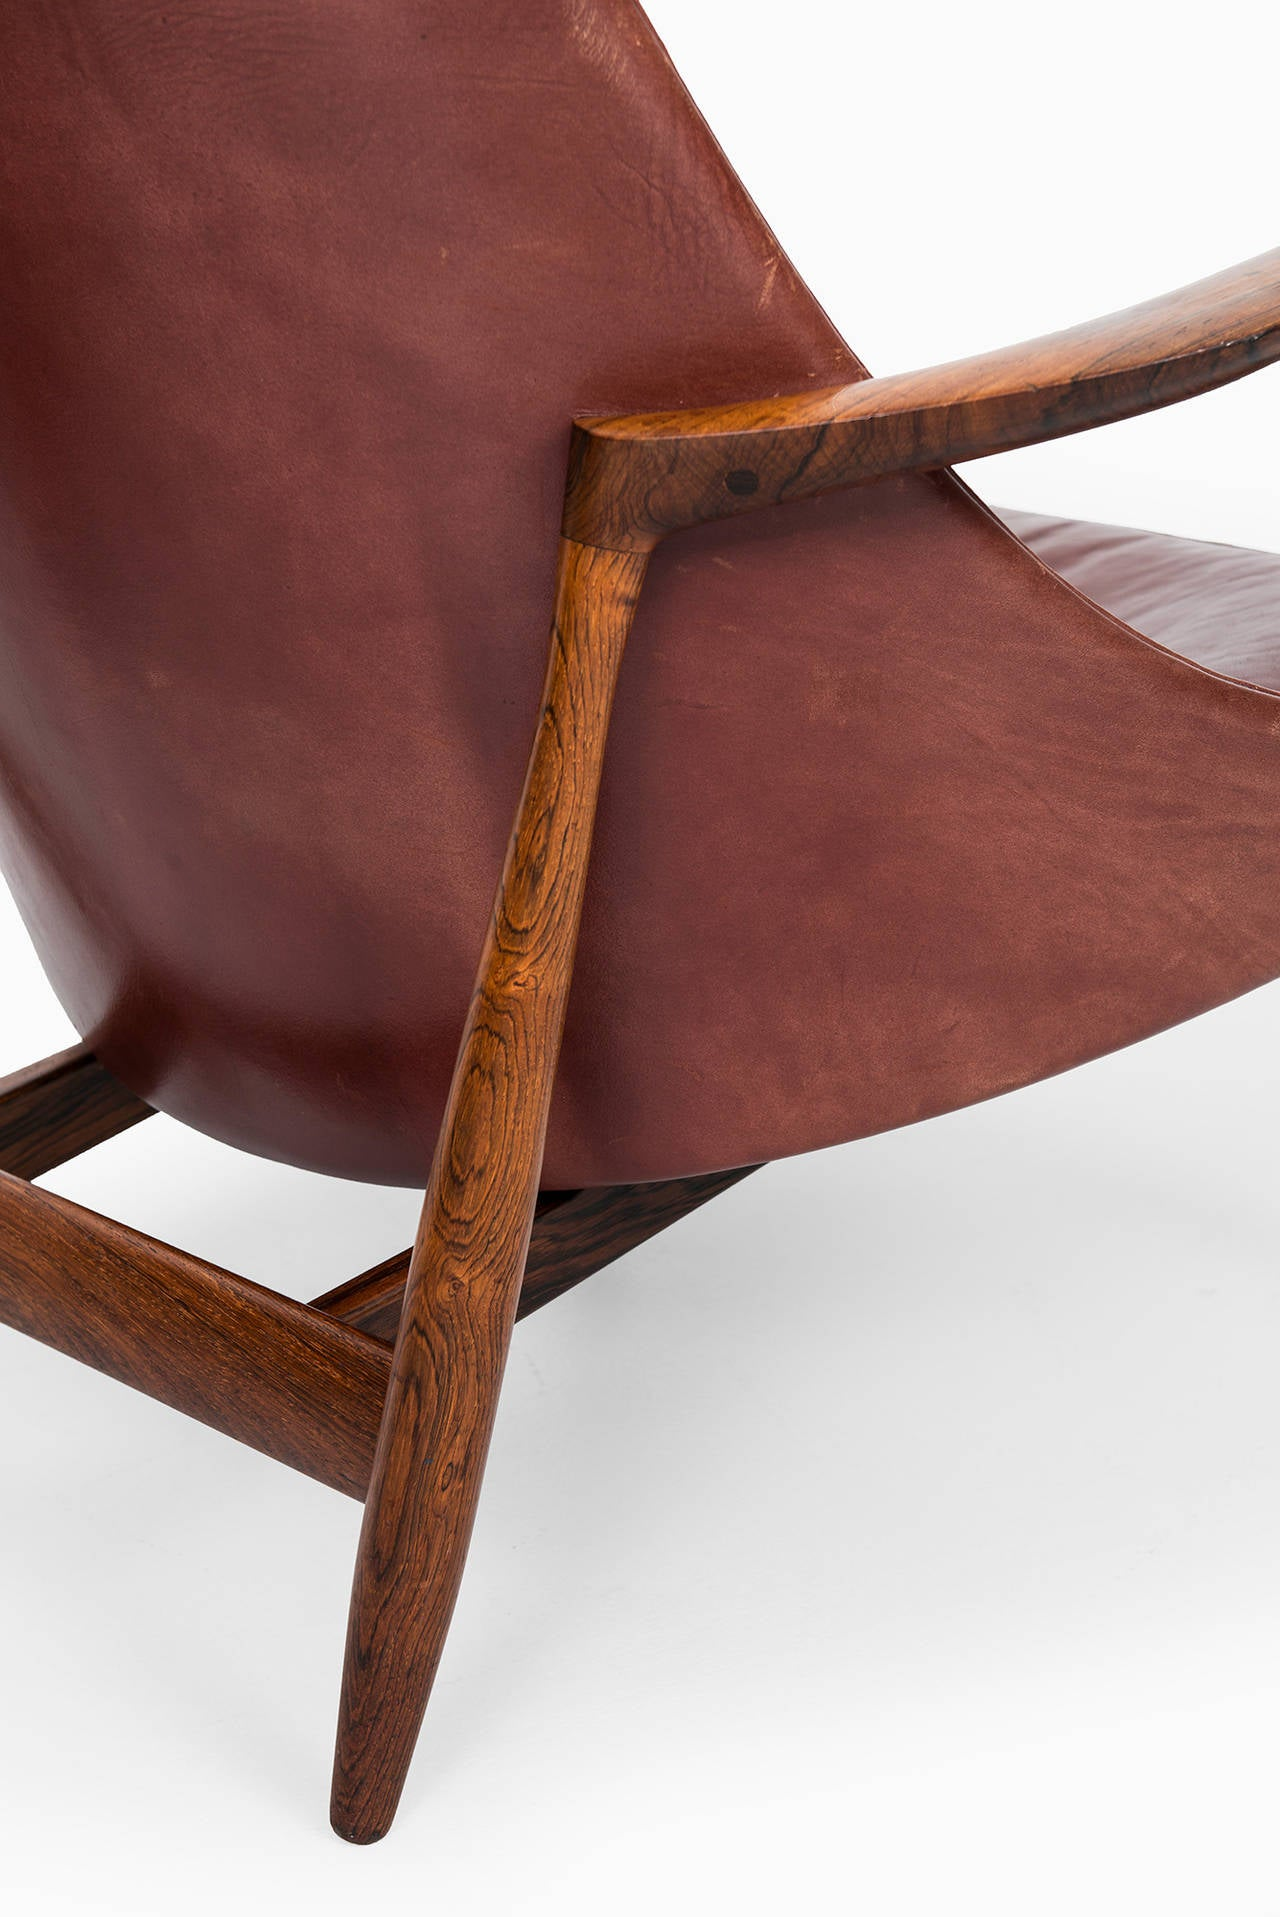 Ib Kofod-Larsen Elizabeth Easy Chairs by Christensen & Larsen in Denmark 6